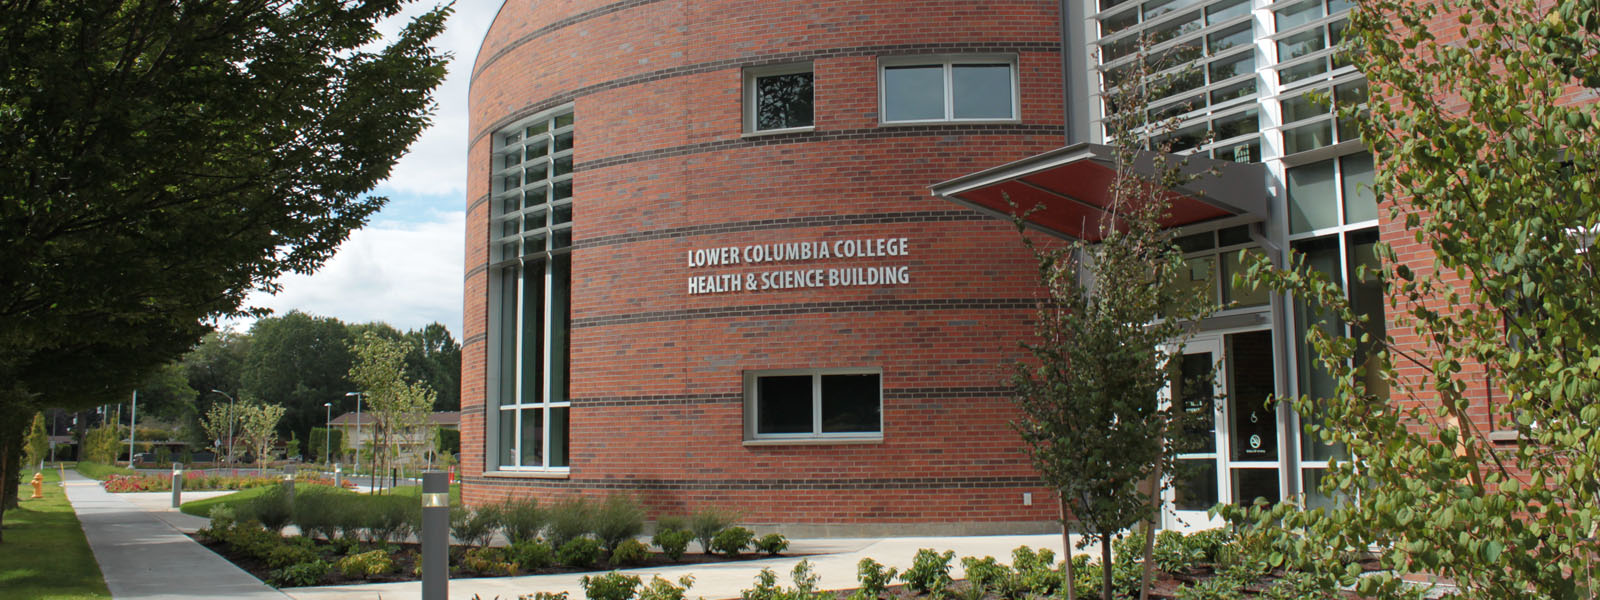 Lower Columbia College Health and Science Building